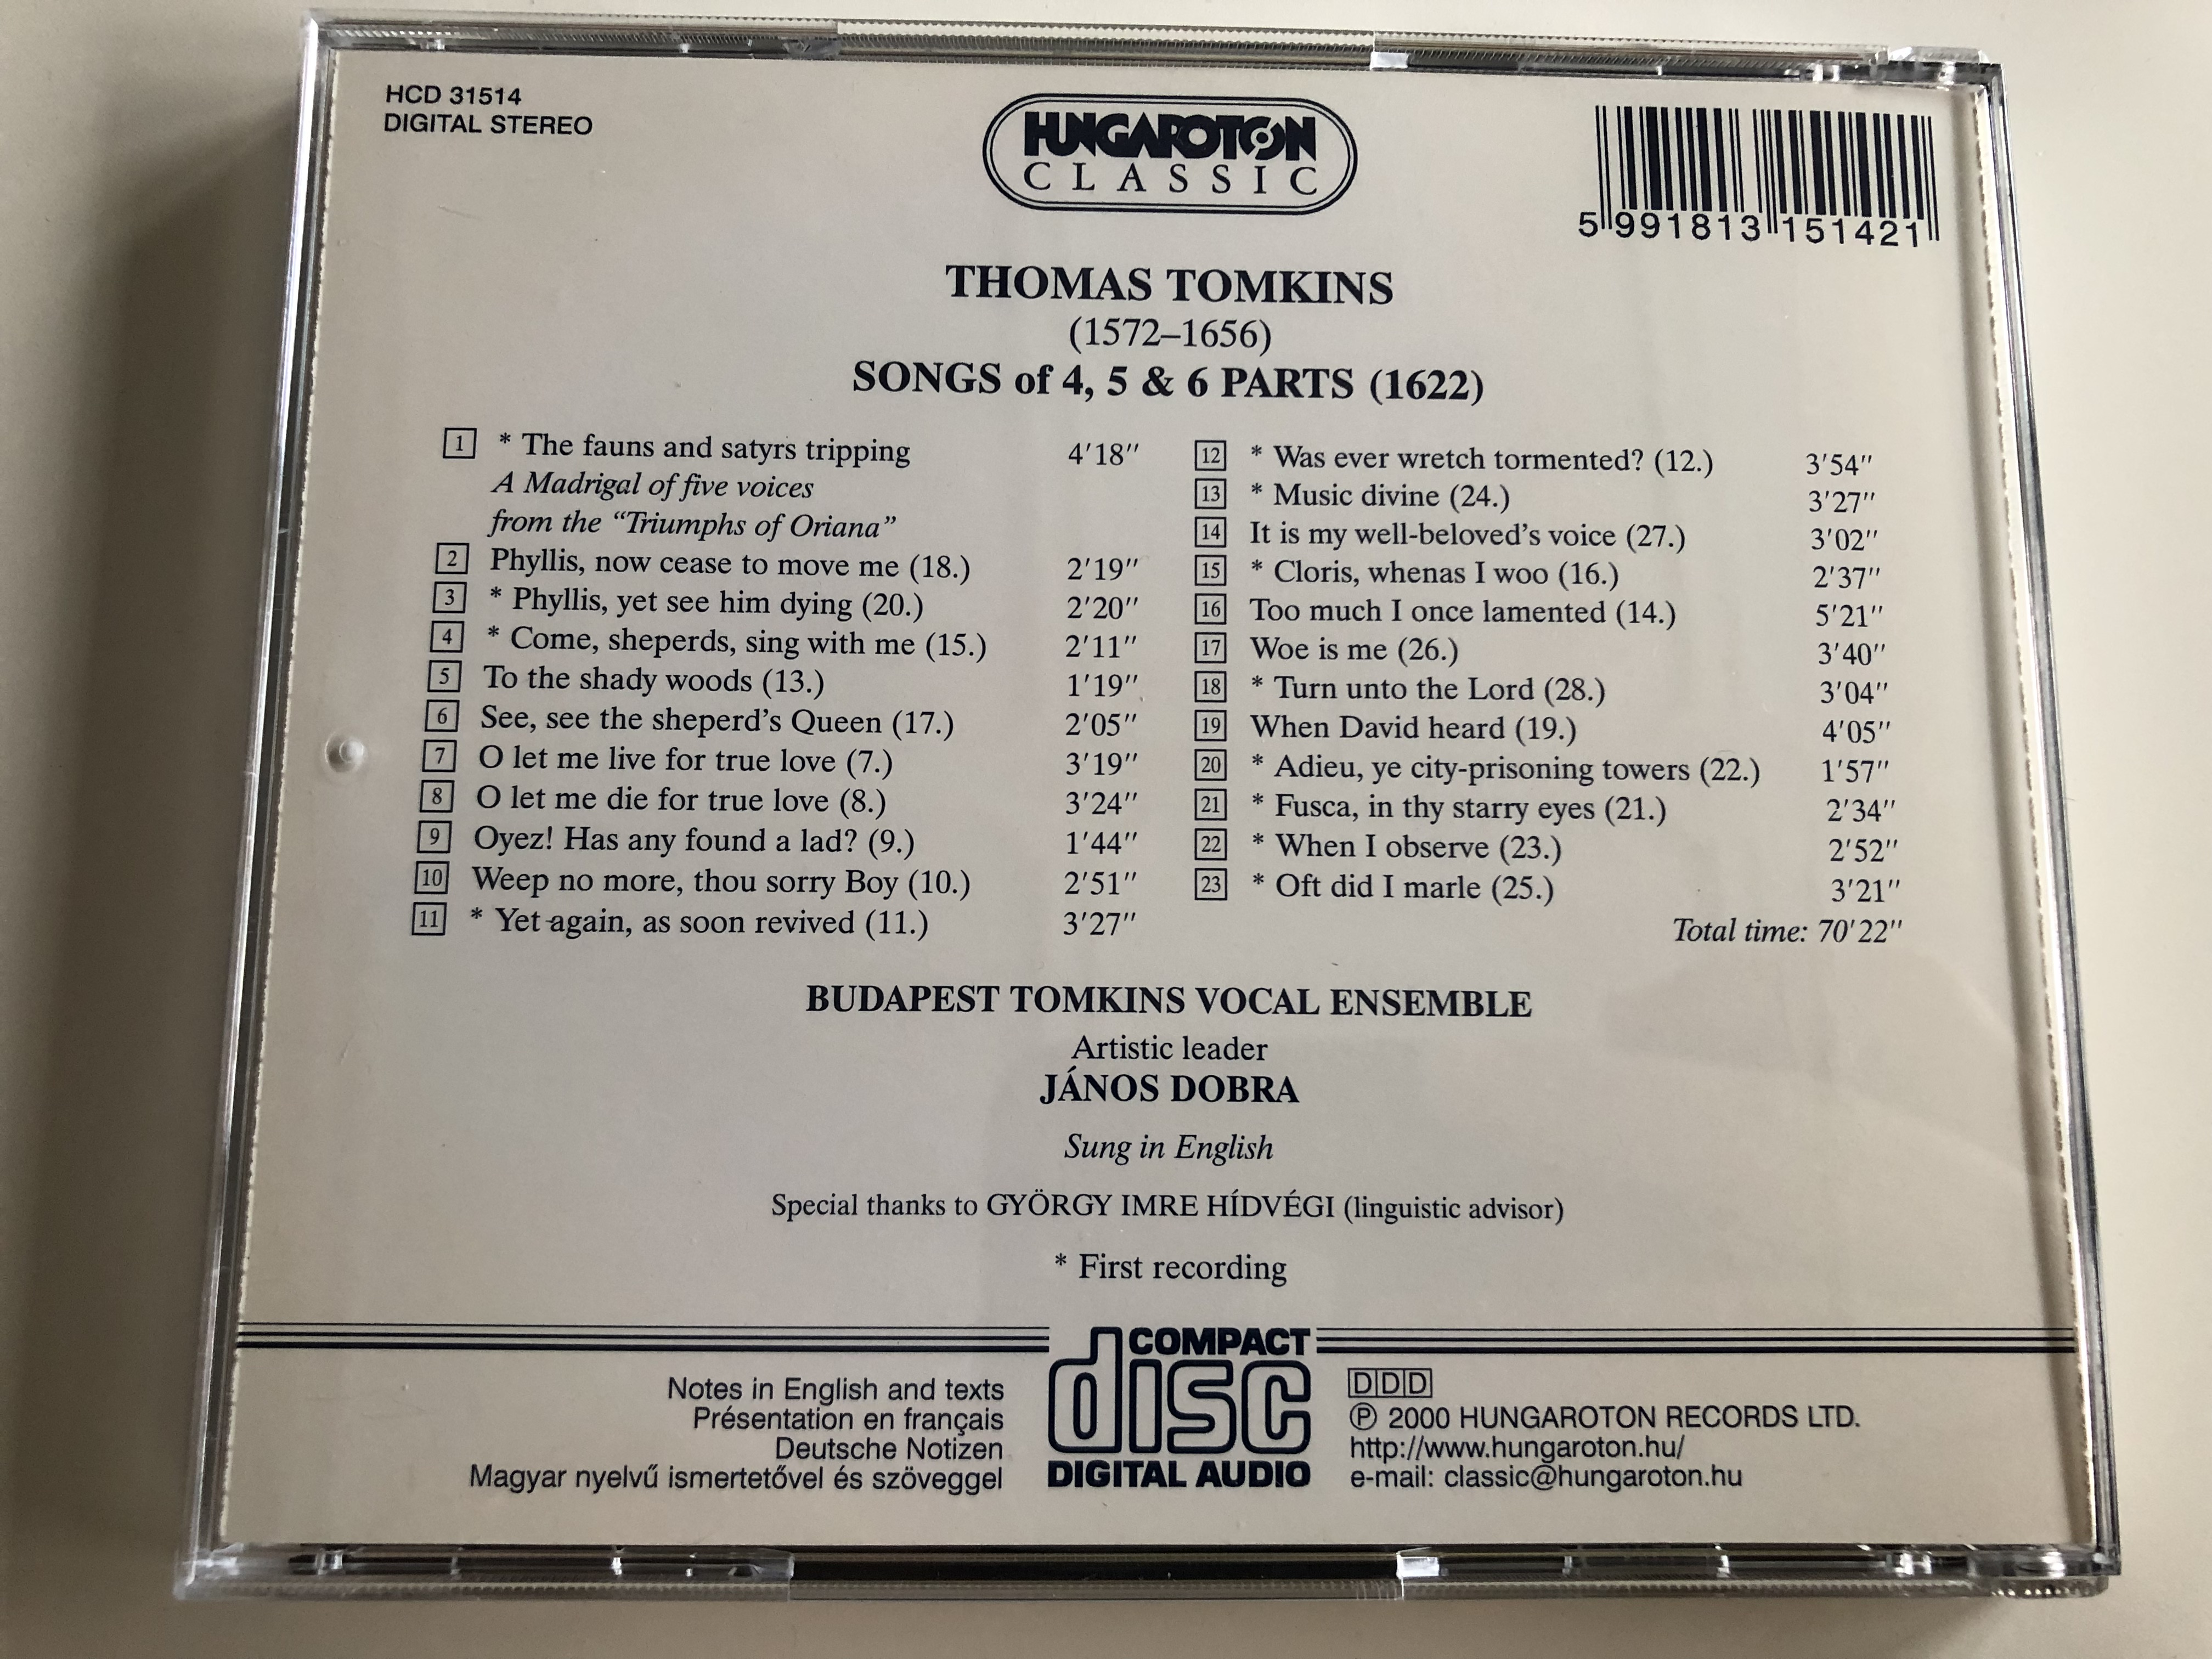 thomas-tomkins-songs-budapest-tomkins-vocal-ensemble-audio-cd-2000-conducted-by-j-nos-dobra-songs-of-4-5-6-parts-hungaroton-classic-hvd-31514-11-.jpg